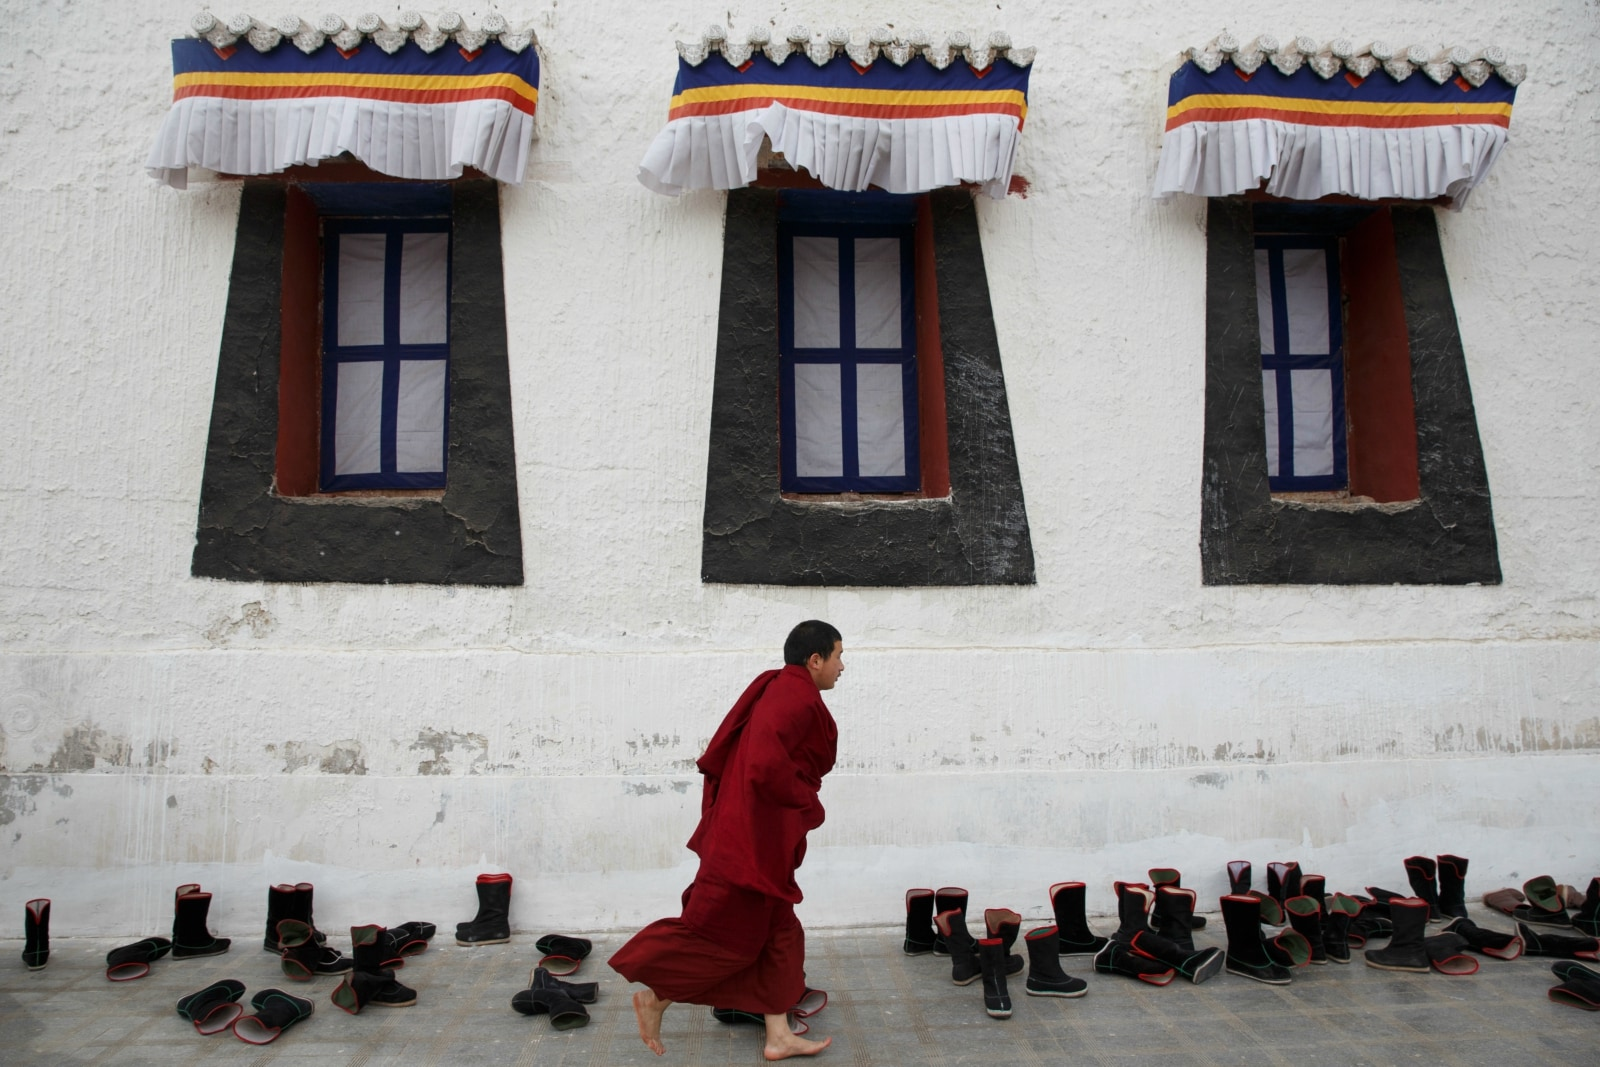 A Buddhist monk arrives late for a prayer session at Rongwo Monastery in the largely ethnic Tibetan town of Rebkong, Qinghai province, China March 9, 2019. REUTERS/Thomas Peter